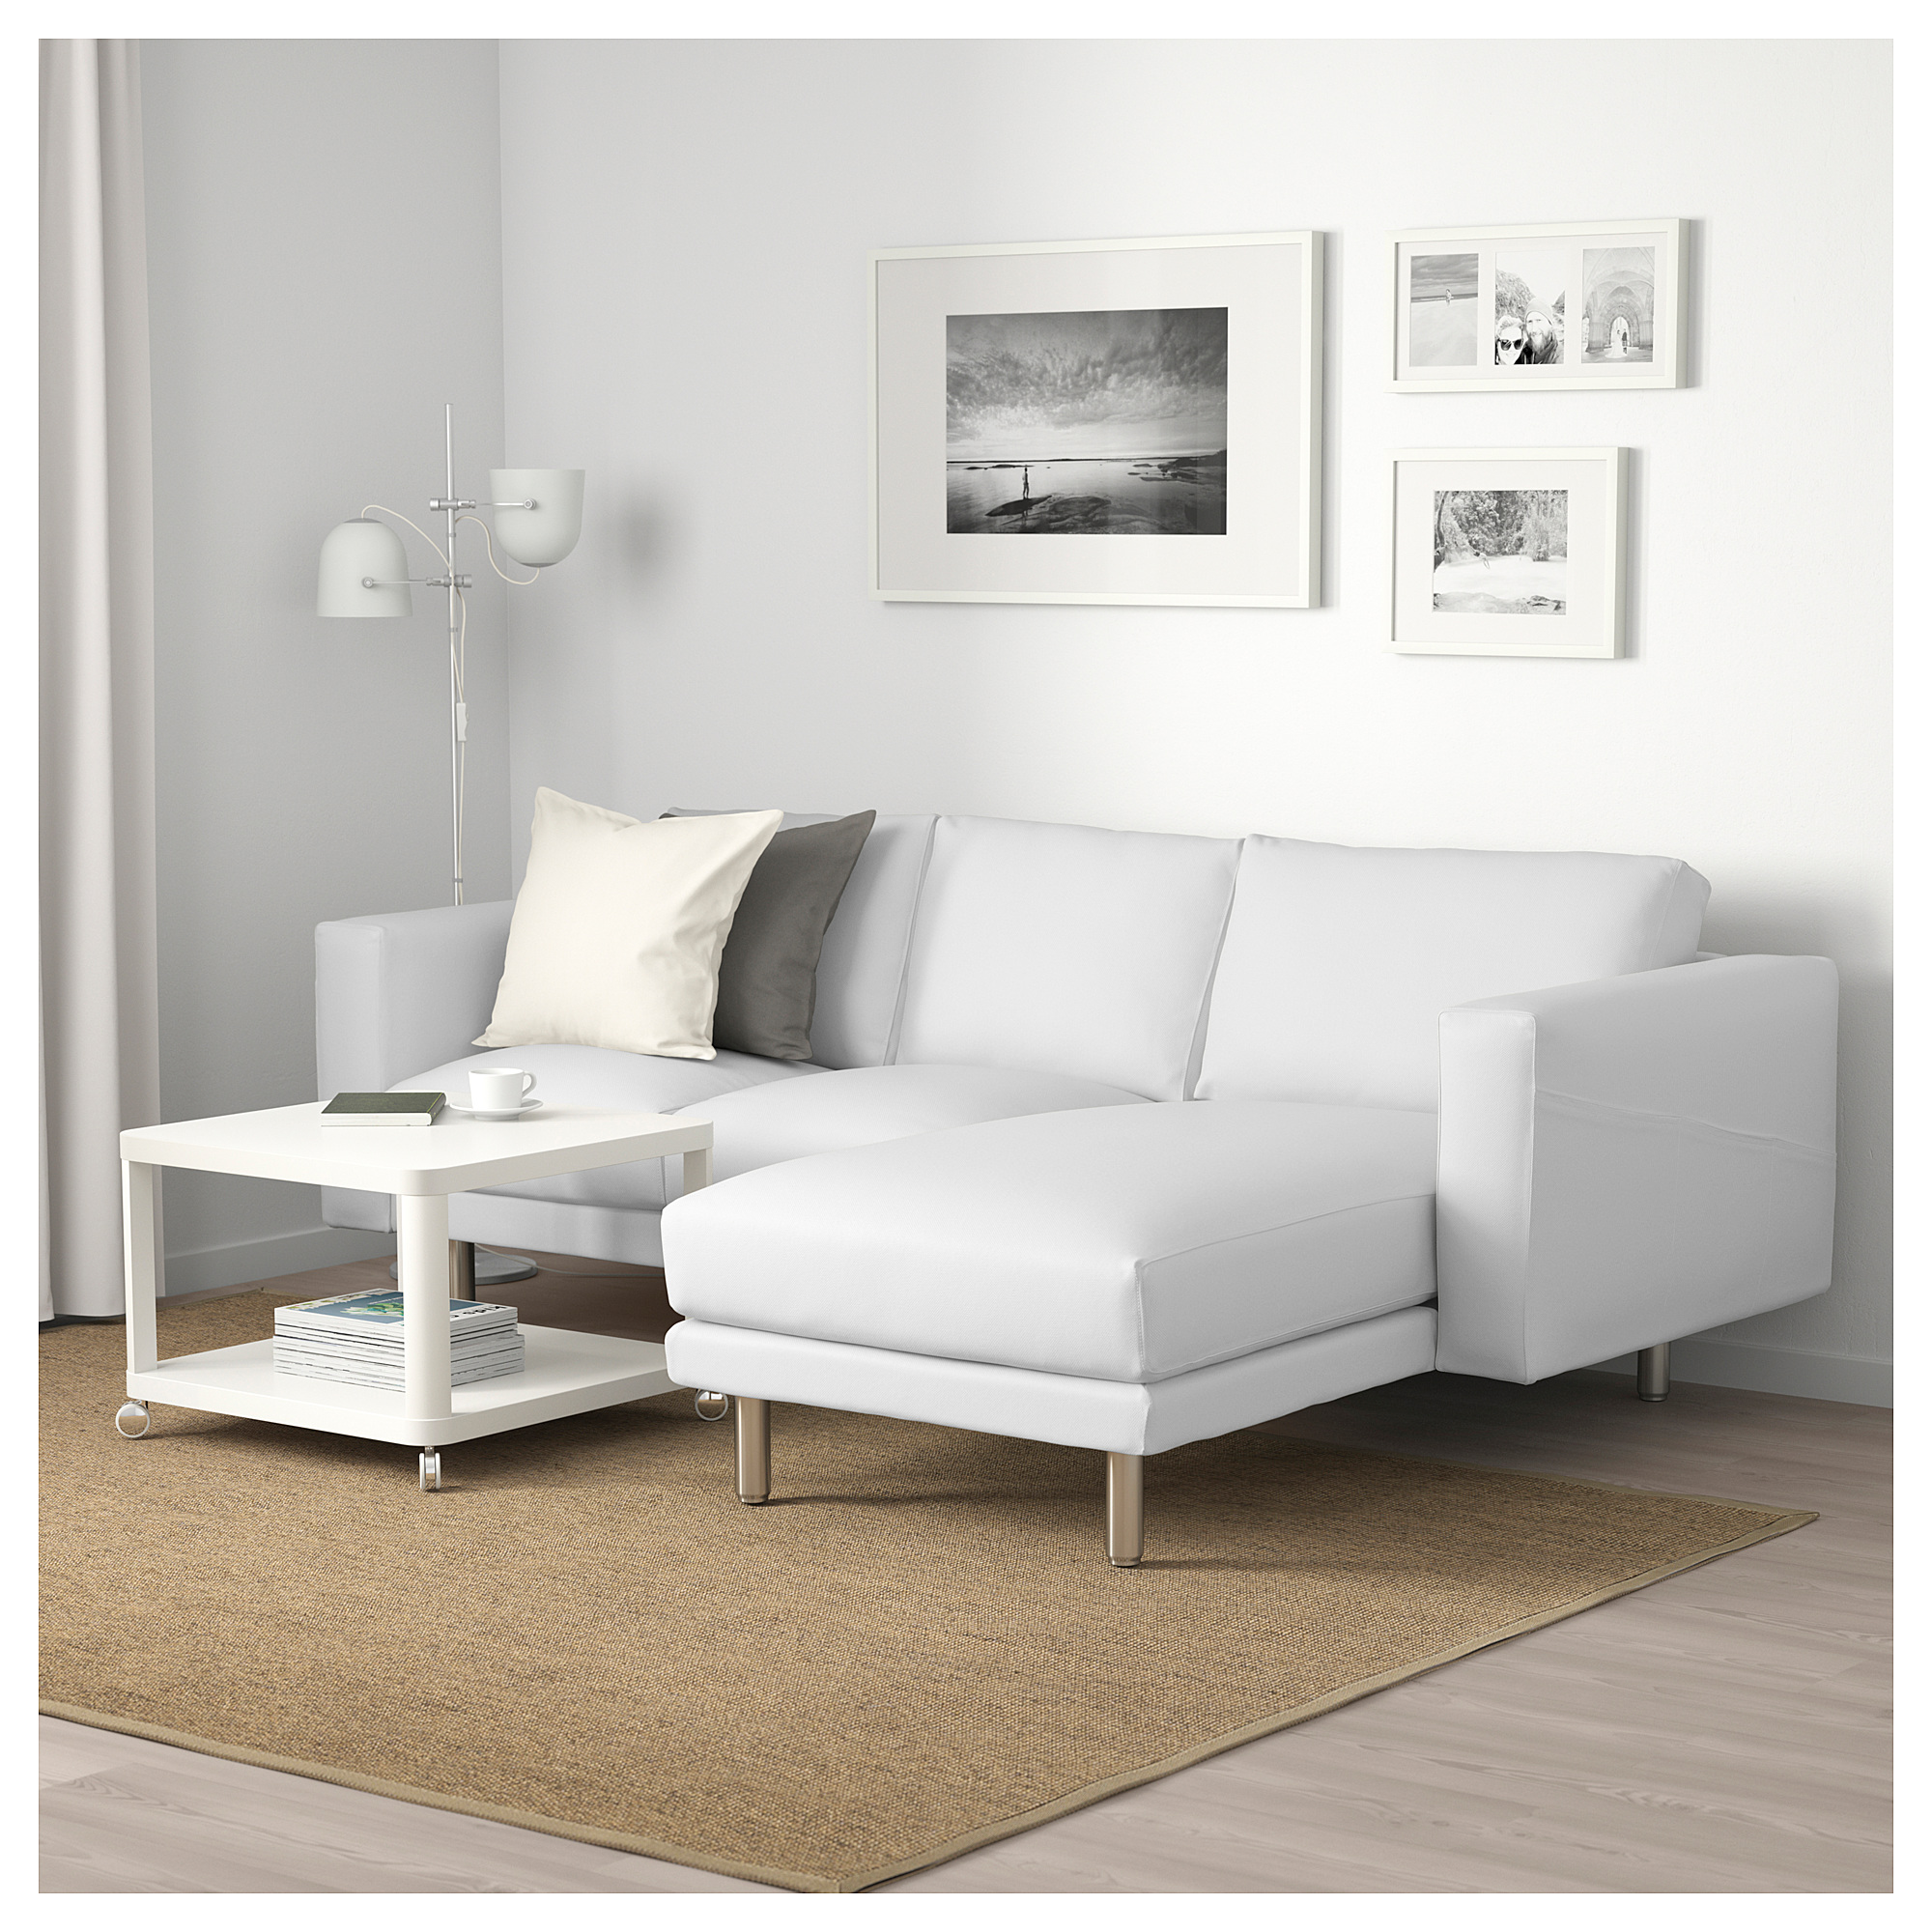 Fine Norsborg 3 Seat Sofa With Chaise Longue Finnsta White Machost Co Dining Chair Design Ideas Machostcouk